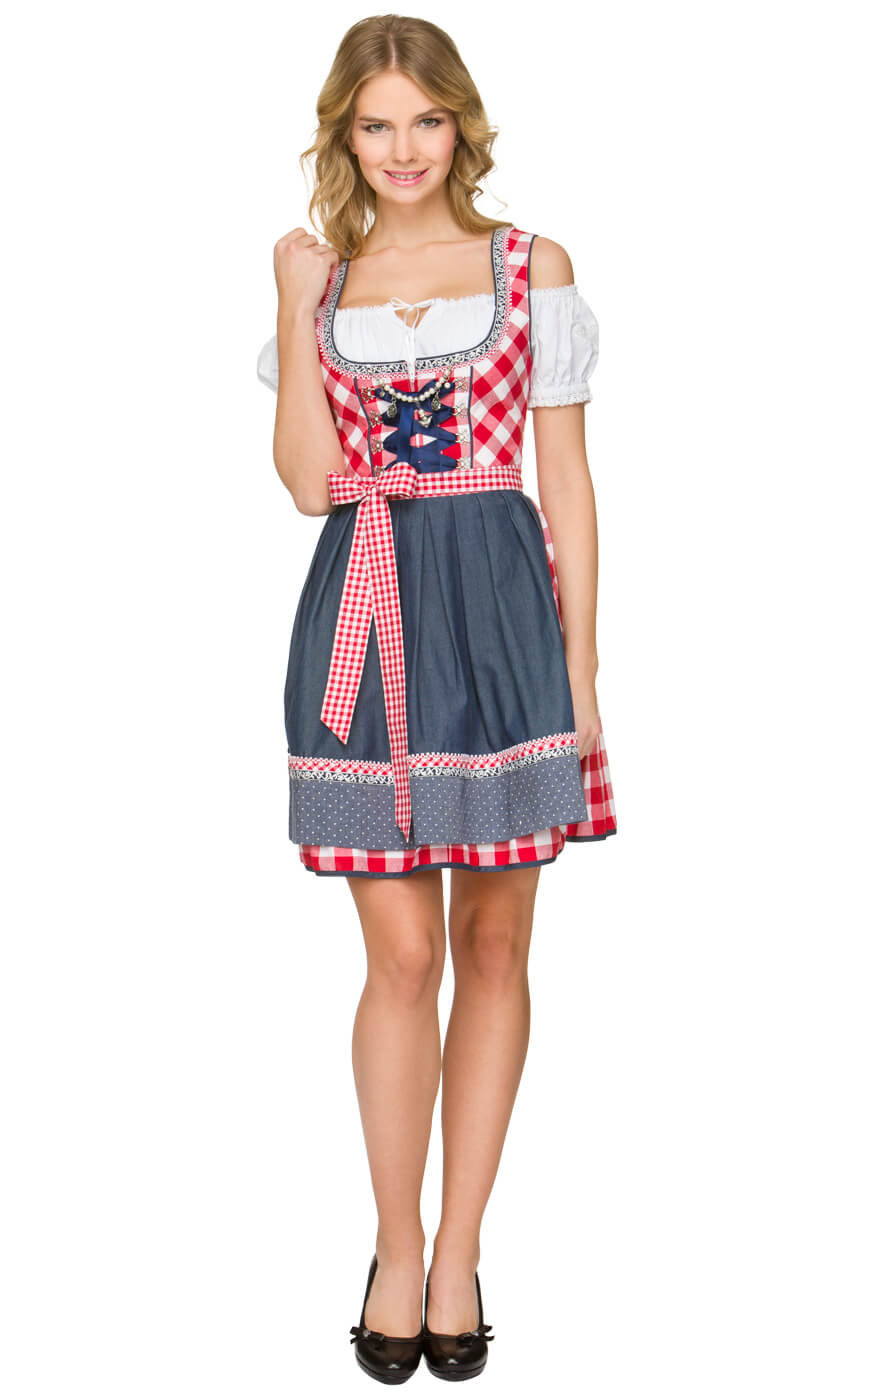 Mini-Dirndl 50cm Kitty rood von Stockerpoint